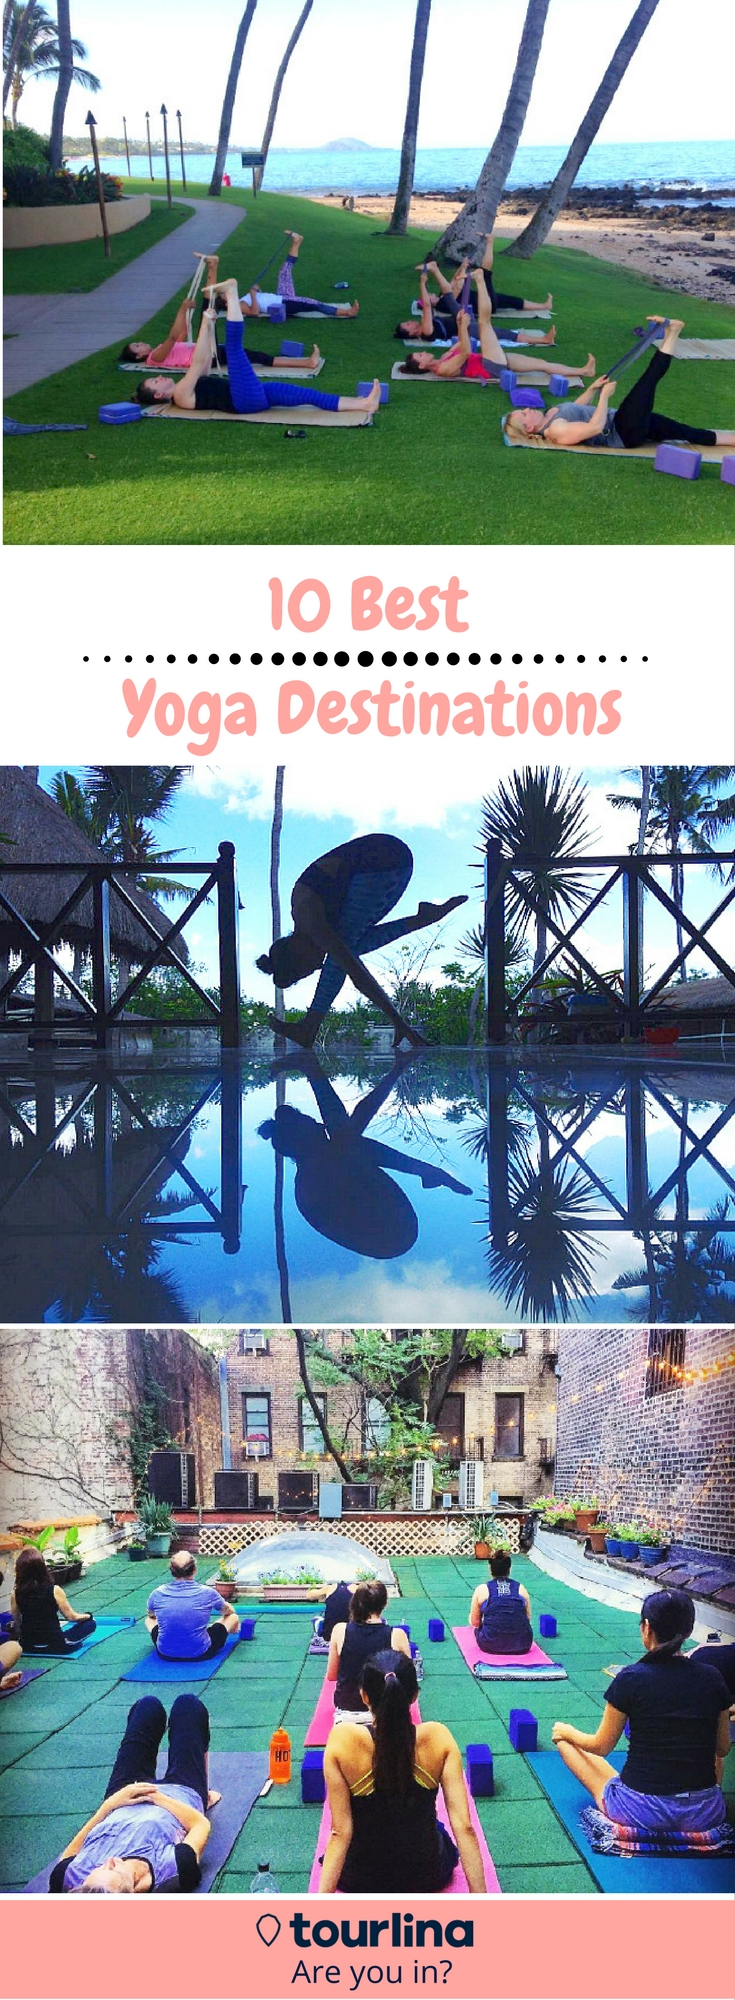 10 Best Yoga Destinations